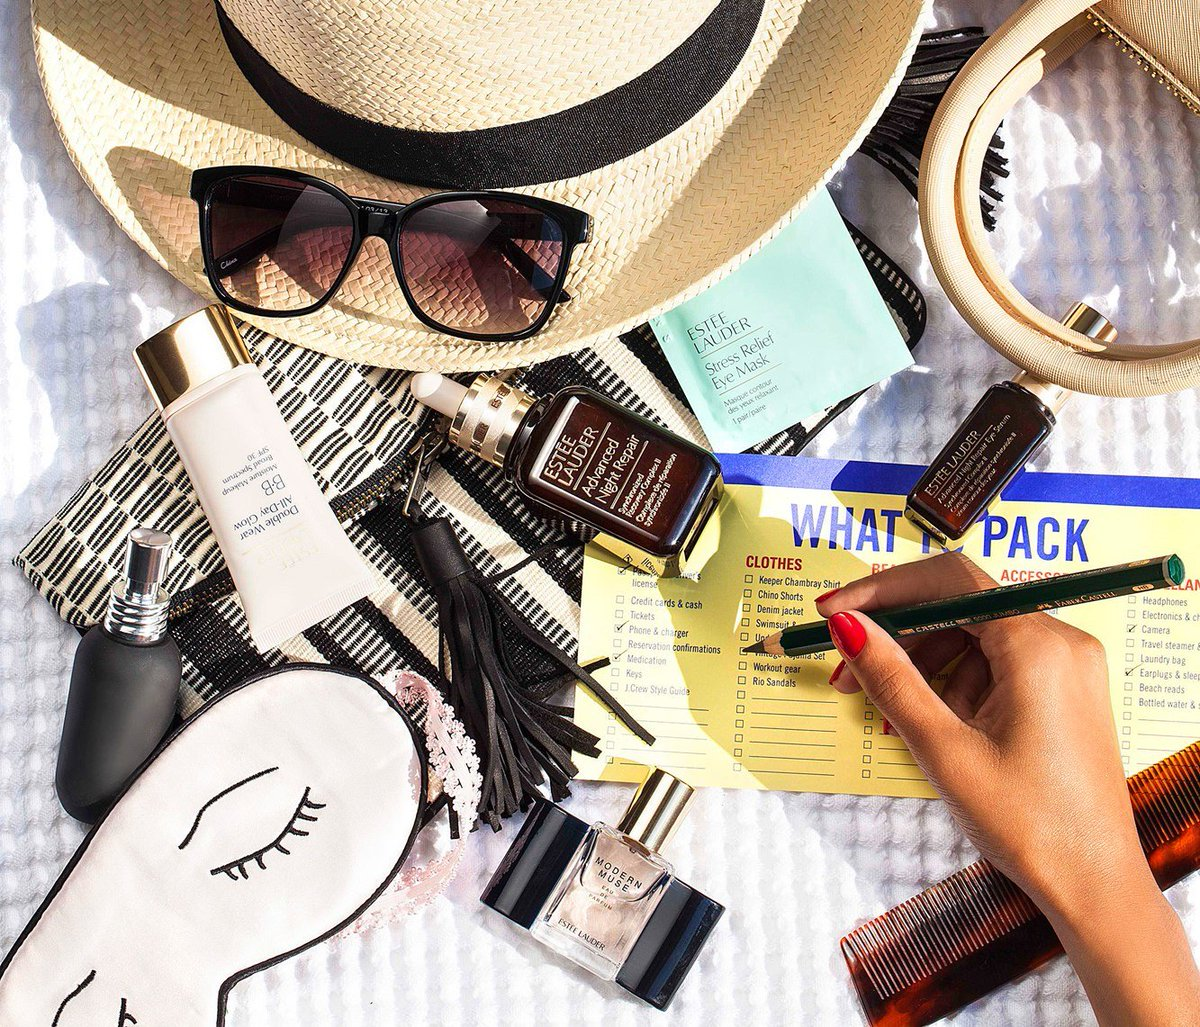 Find all your EsteeEssentials for summer getaways at @WorldDutyFree! Shop now: